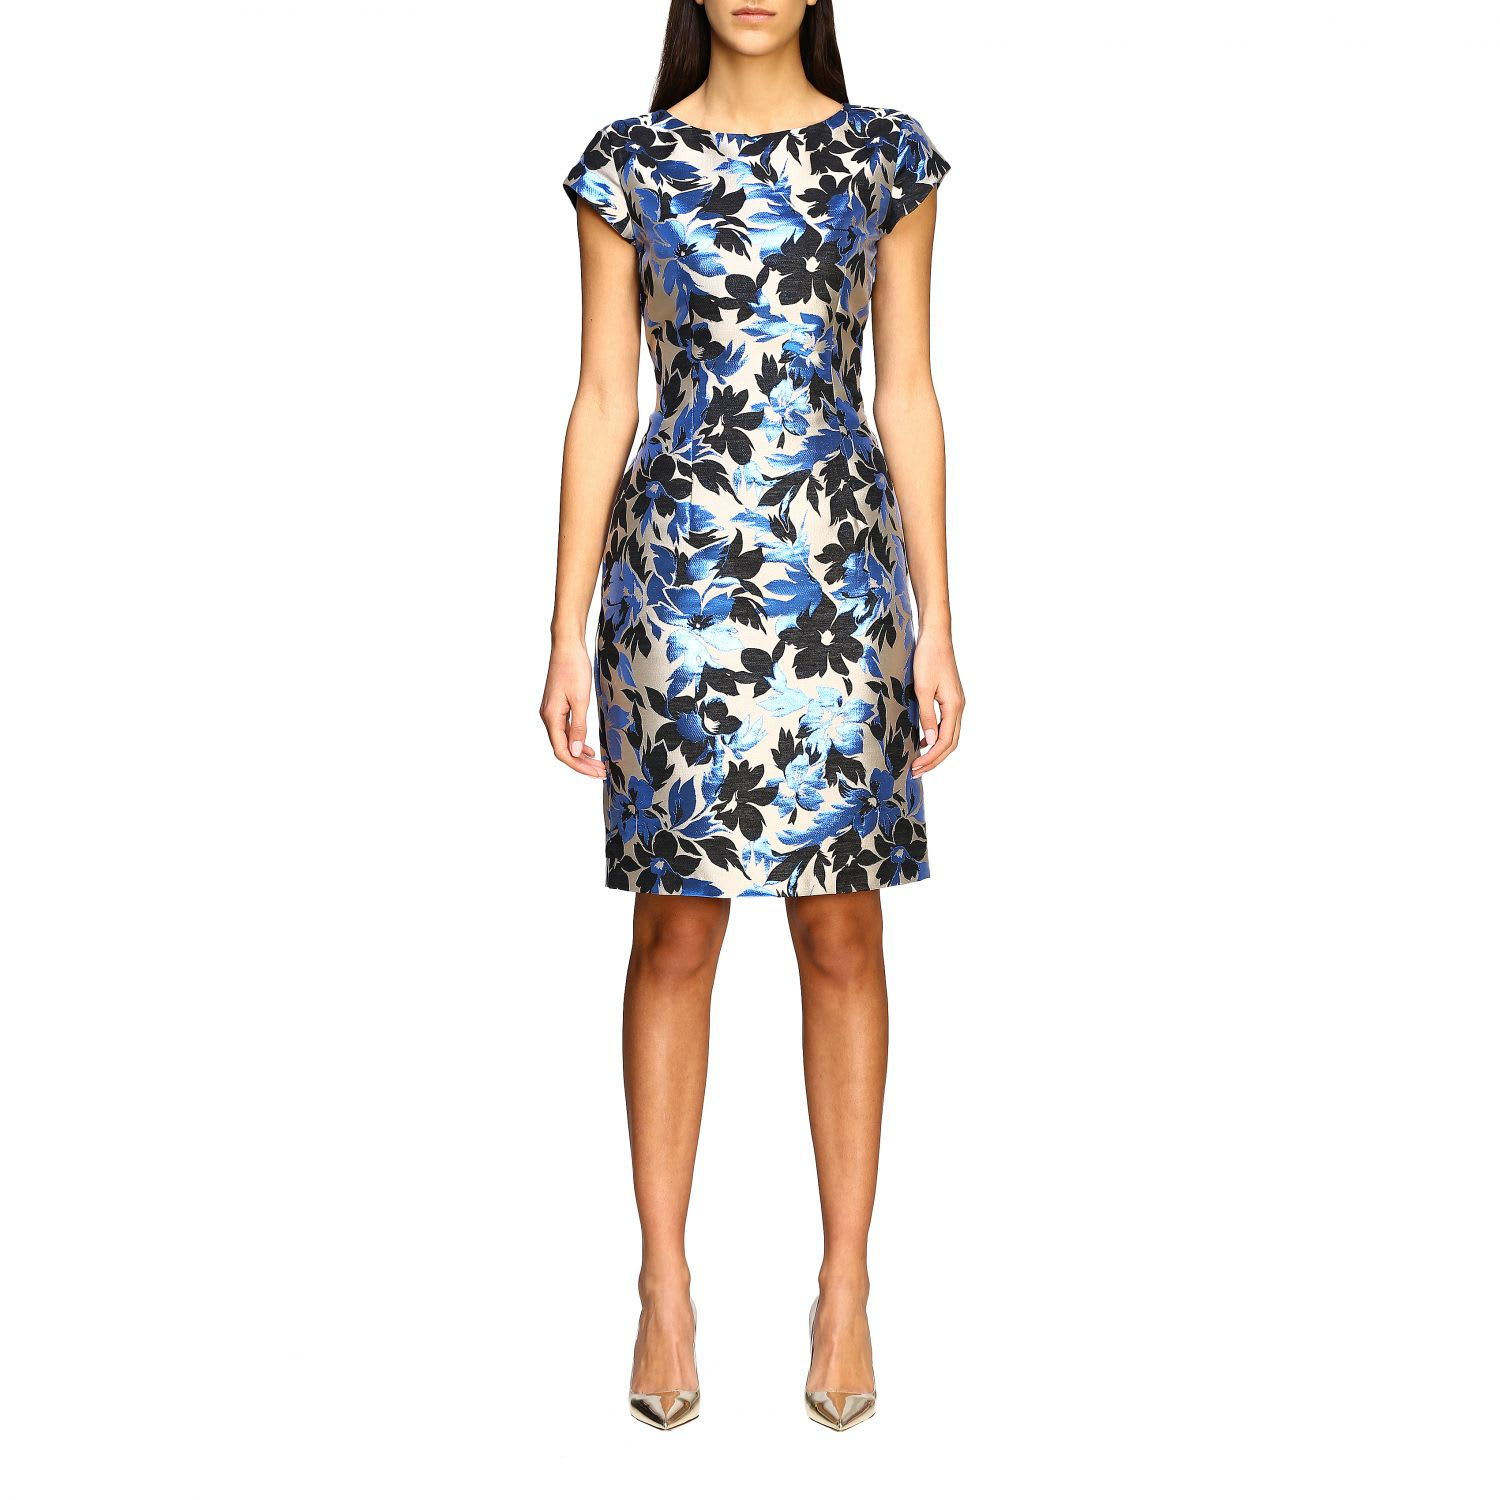 Buy Boutique Moschino Dress Boutique Moschino Dress In Floral Pattern Brocade online, shop Boutique Moschino with free shipping